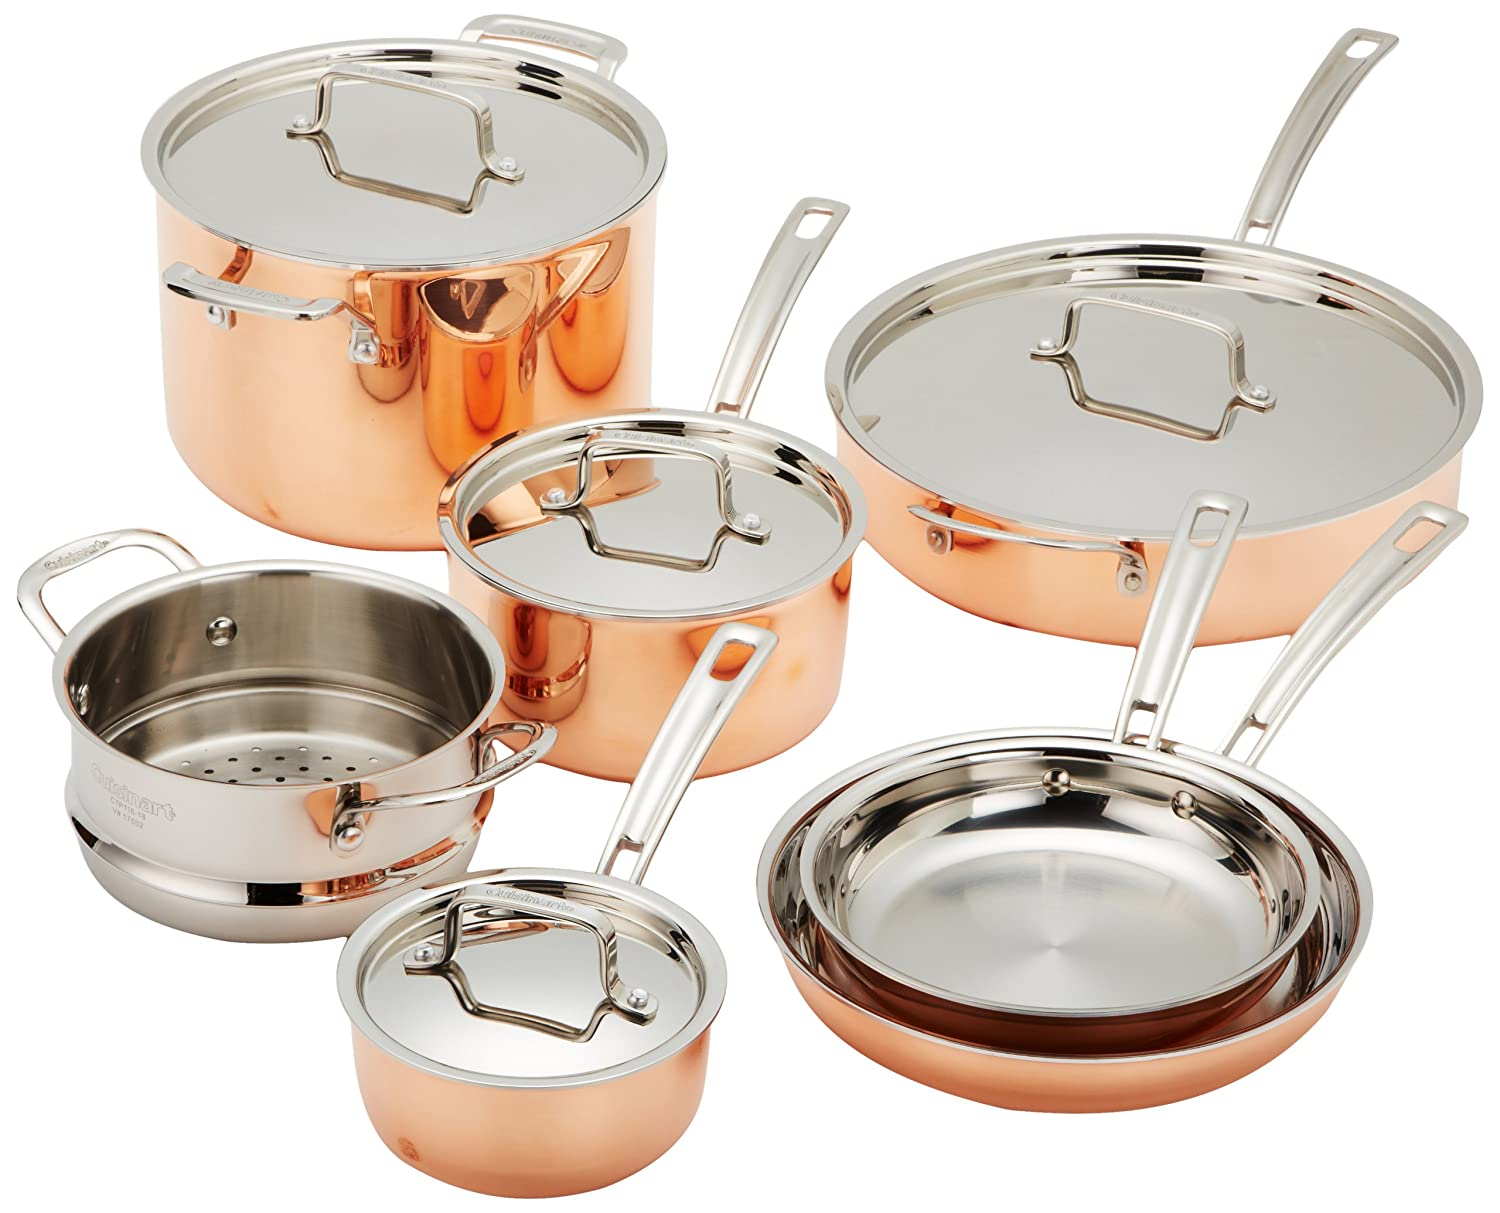 Cuisinart 11AM Tri-Ply 11-Piece Set Review